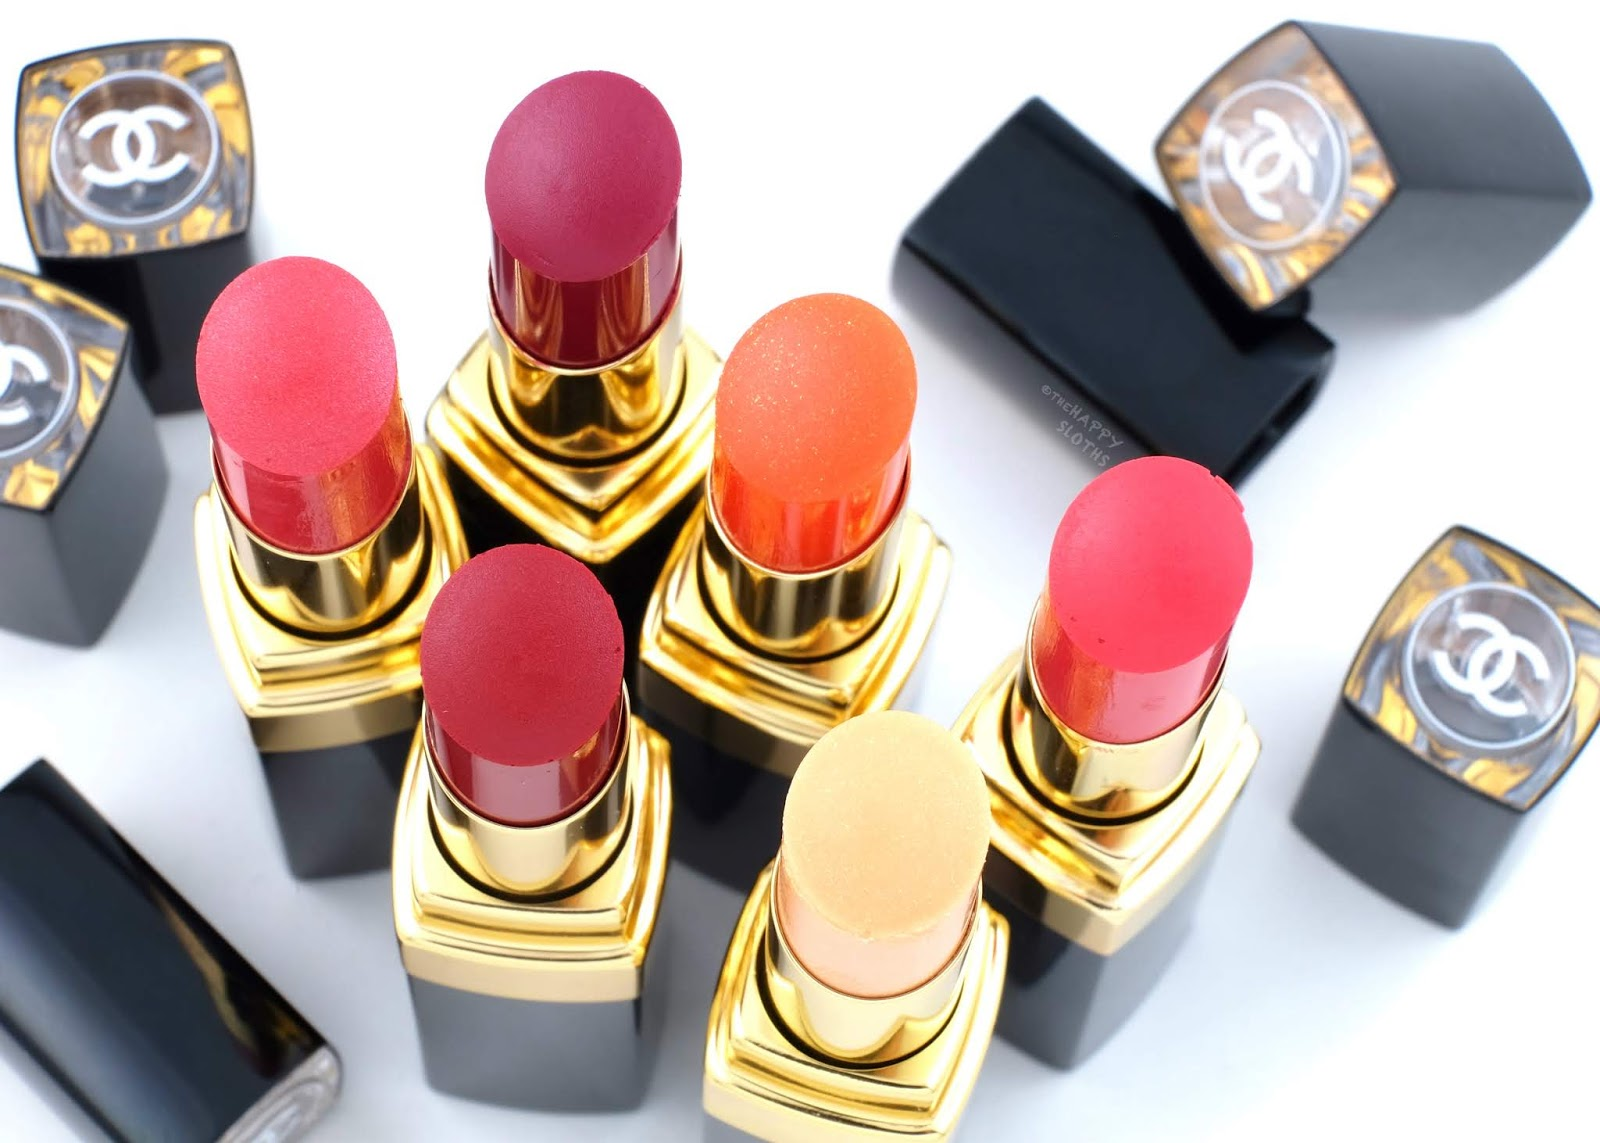 Chanel   Rouge Coco Flash Lipstick: Review and Swatches